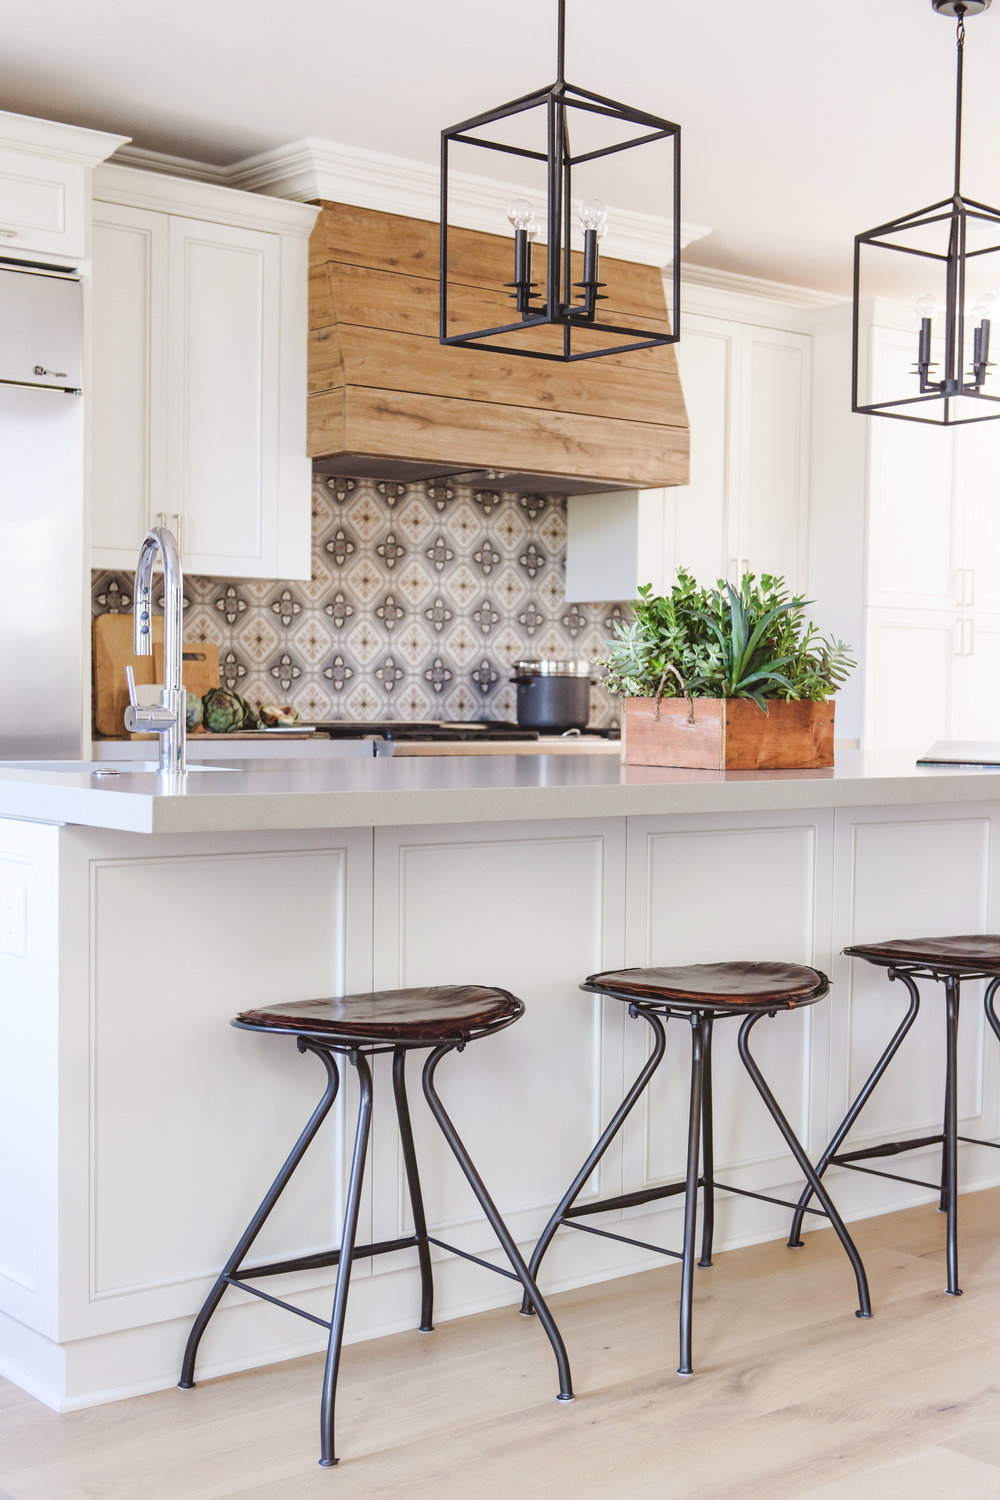 Kitchens Savvy Interiors With Images Kitchen Remodel Small